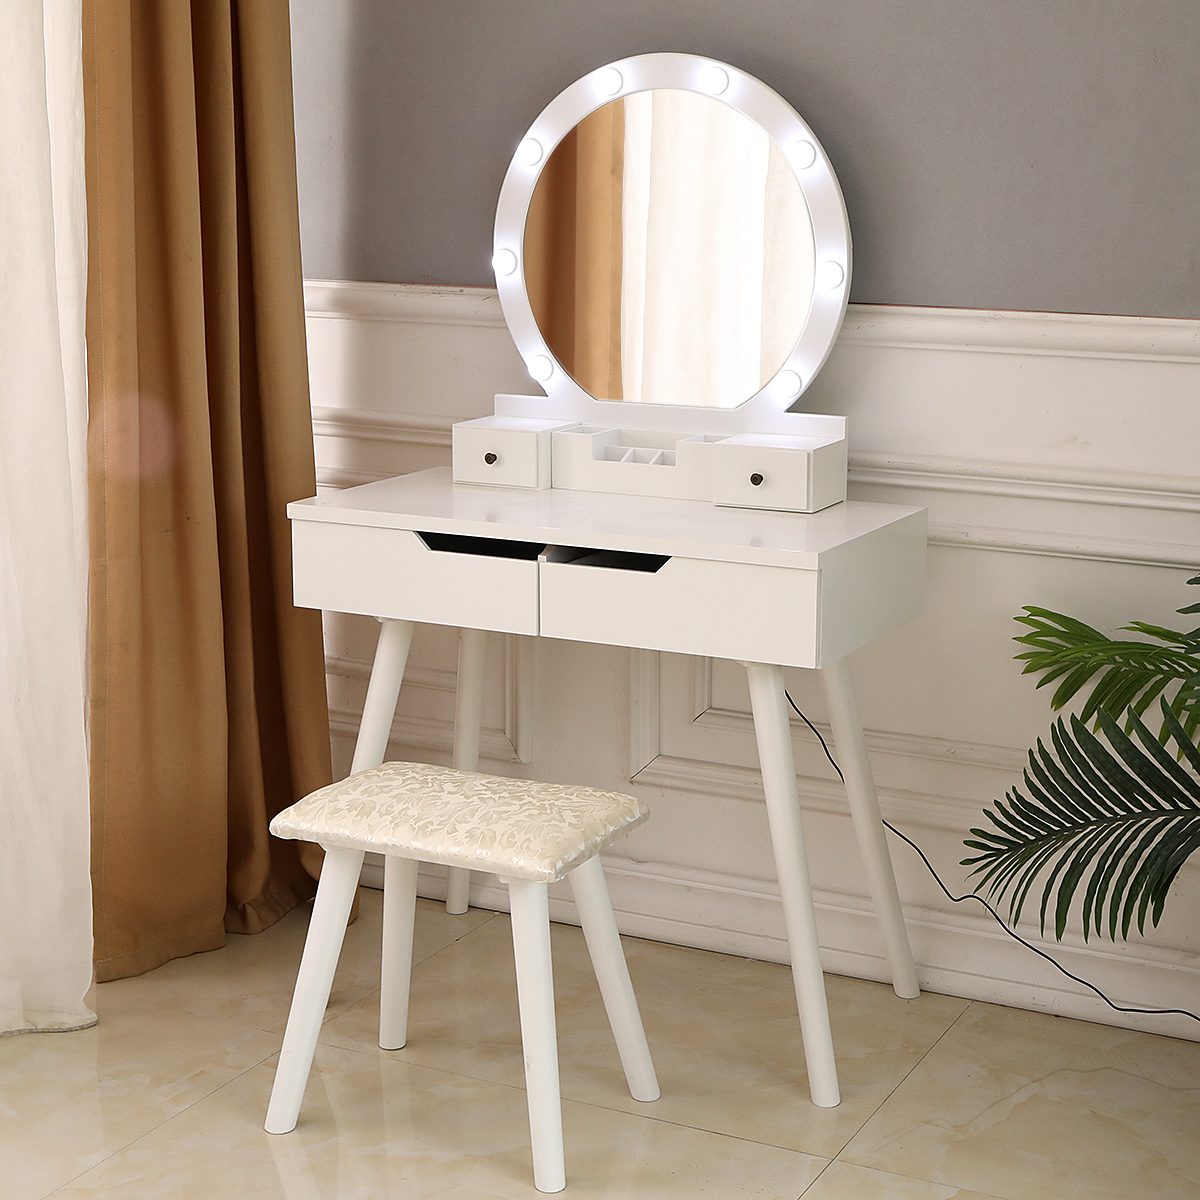 Image of: Ktaxon Vanity Set With Round Lighted Mirror Makeup Dressing Table With 8 Light Bulbs Cushioned Stool Set Bedroom Vanities Set White Walmart Com Walmart Com